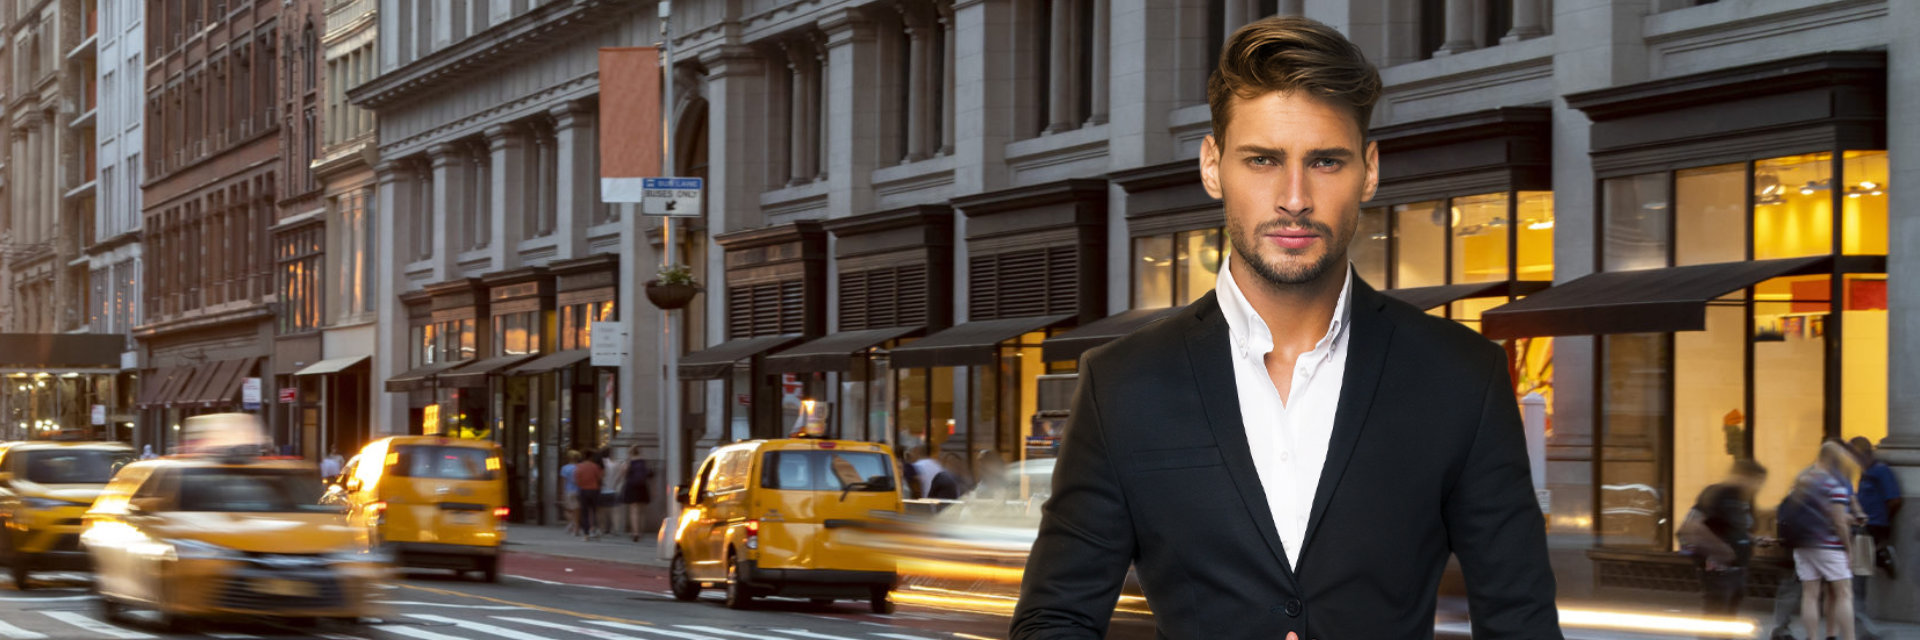 young handsome man with NY street in the background